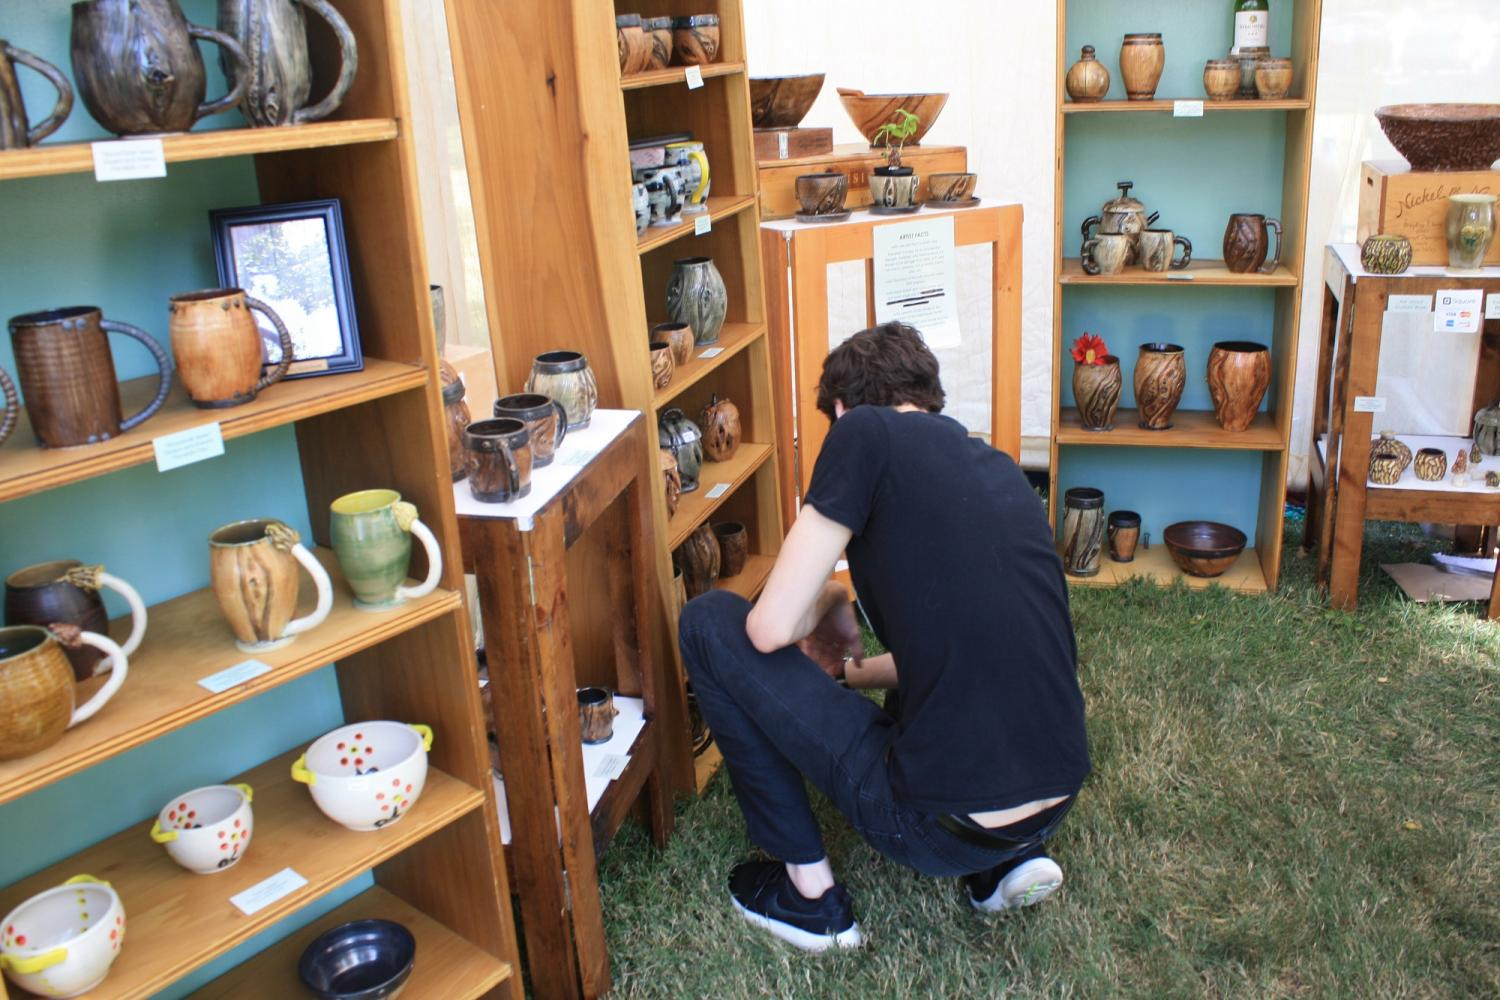 """Ethan Johnson, IUS Senior and son of Art In Speed Park Director, visiting artist, Jennifer Meeker's booth, a potter from Indianapolis, IN.  """"I always try to pick up a piece from one of the booths every year, it's something fun and easy to get a cool collection of things going."""" Johnson said this year, it was mugs he was in search of, Jennifer Meeker's specialty."""